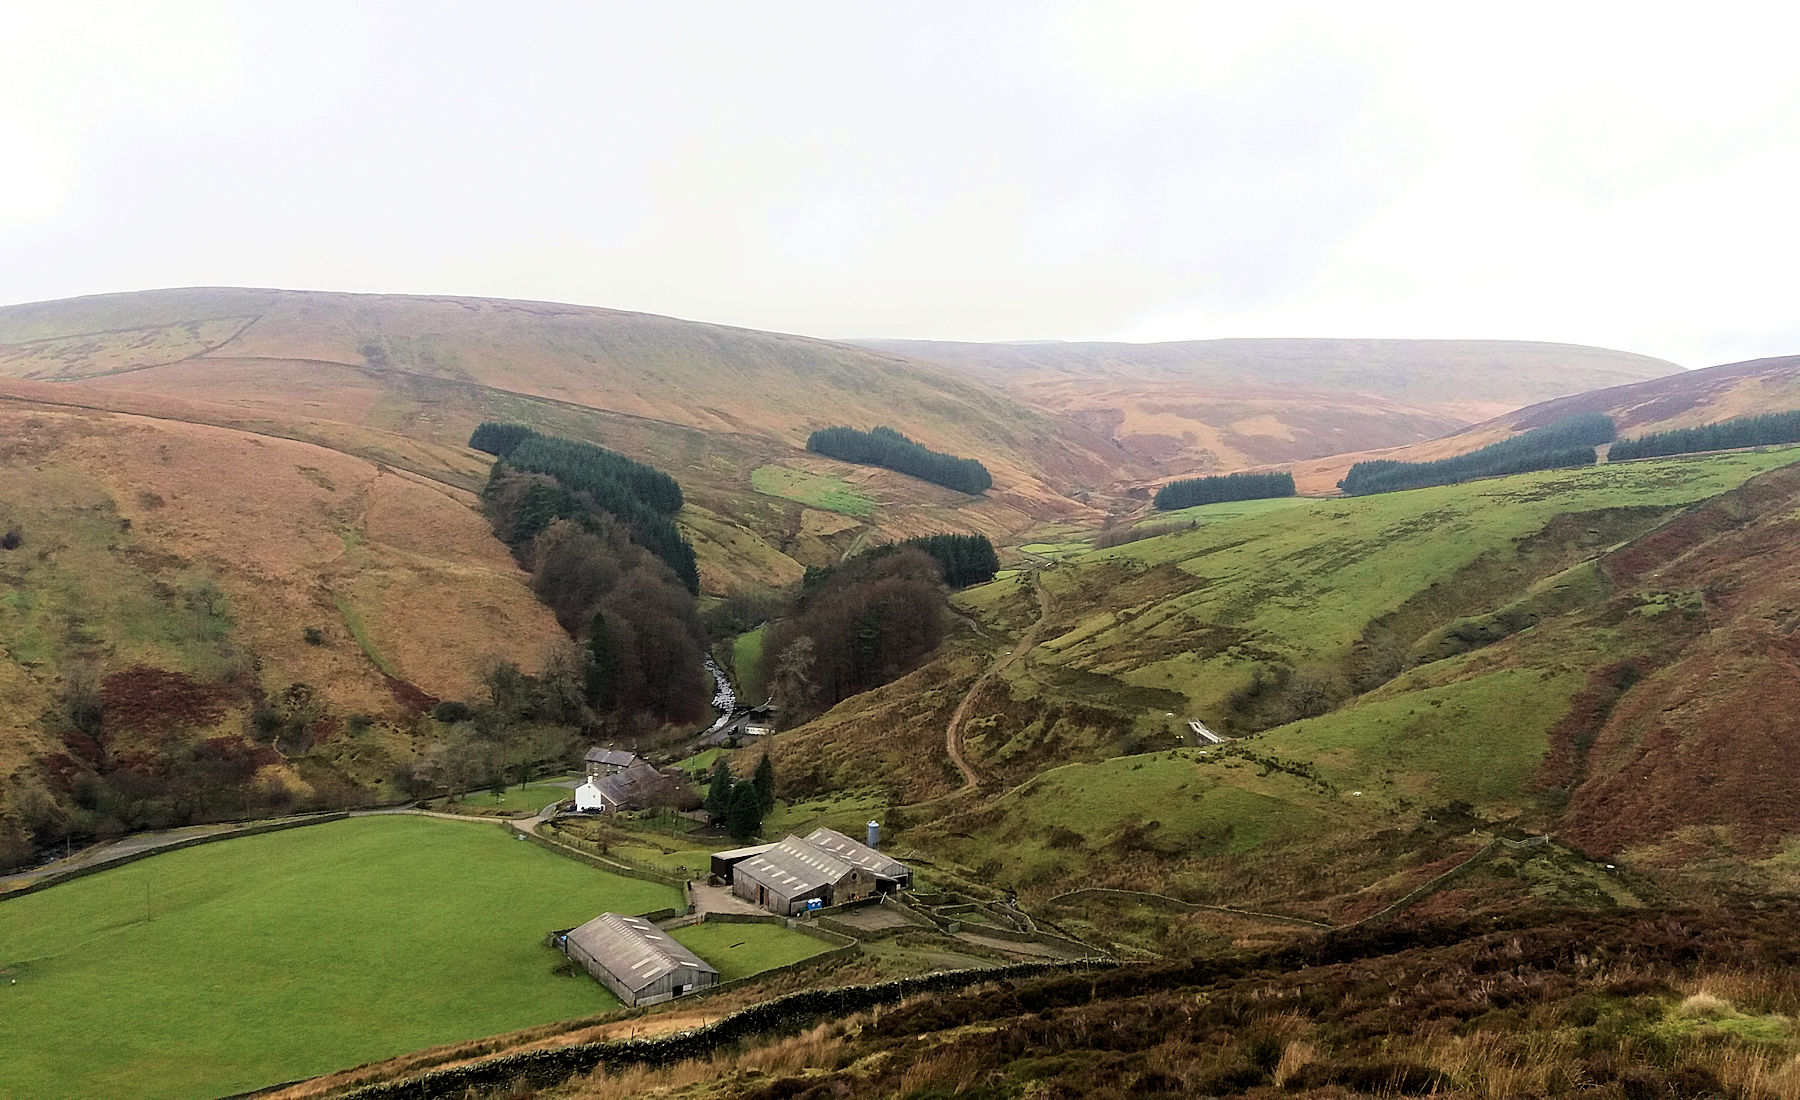 Whitendale from the east